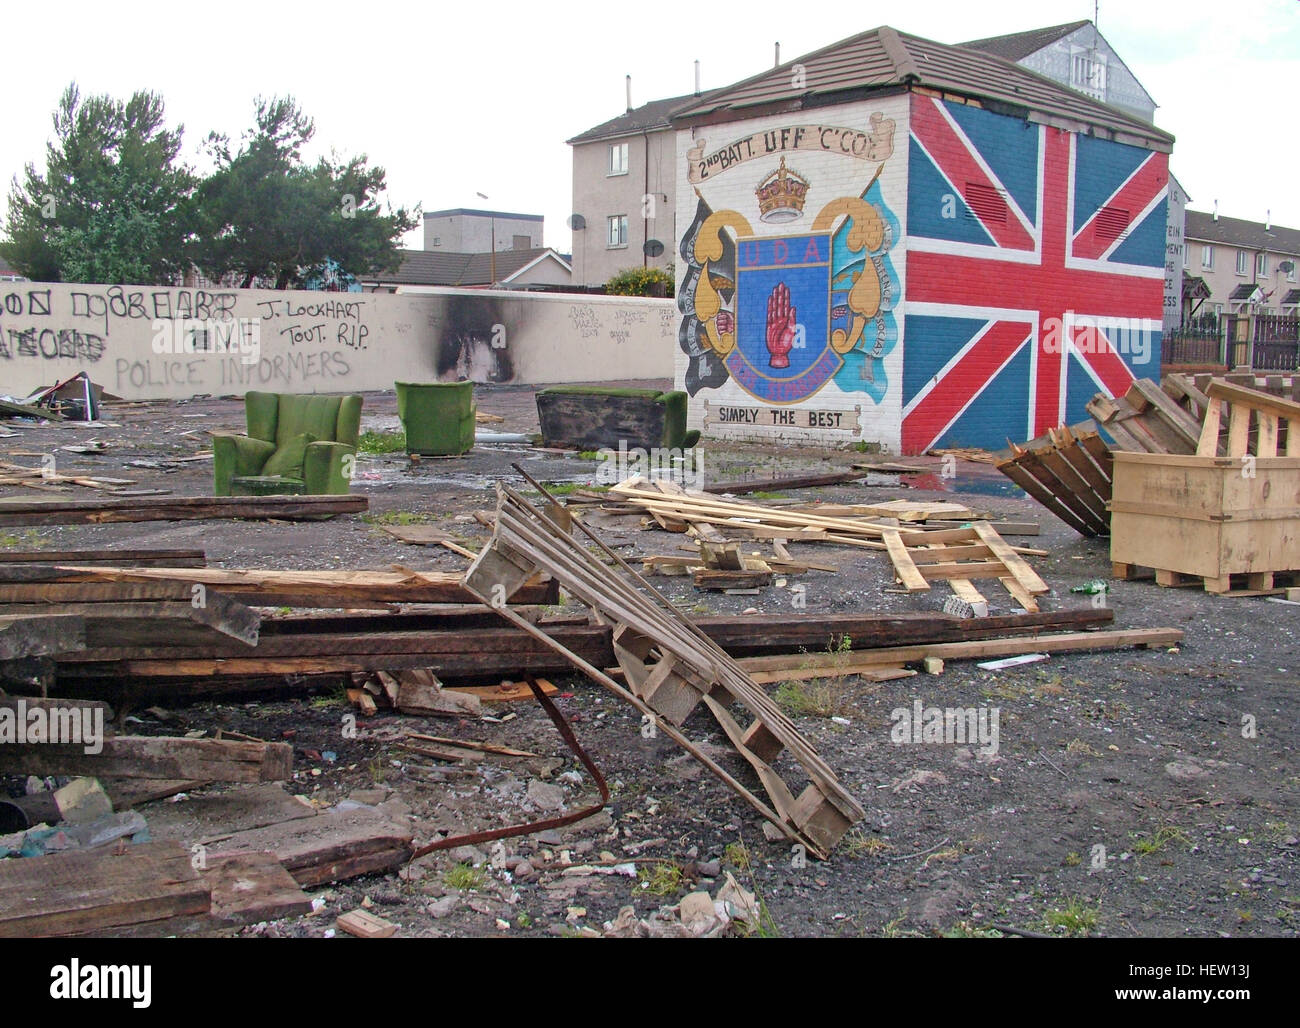 Unionist,British,Shankil,rd,painting,art,artist,martyr,fighter,para,paramilitary,soldier,wall,gable,end,gable end,community,protestant,Shankill Road Mural,West,West Belfast,NI,Northern Ireland,best,Ulster Freedom Fighters,Battalion,Simply The Best,firewood,Bonfire,tinder,July,marching season,GoTonySmith,@HotpixUK,Tony,Smith,UK,GB,Great,Britain,United,Kingdom,Irish,British,Ireland,problem,with,problem with,issue with,NI,Northern,Northern Ireland,Belfast,City,Centre,Art,Artists,the,troubles,The Troubles,Good Friday Agreement,Peace,honour,painting,wall,walls,tribute,unionism,Fight,Justice,West,Beal,feirste,martyrs,social,tour,tourism,tourists,urban,six,counties,6,backdrop,county,Antrim,DUP,democratic Unionist,red hand,of Ulster,Red Hand Of Ulster,Shankill,Rd,road,Shankill Road,streets of Belfast,protestant,religion,intolerance,prejudice,Buy Pictures of,Buy Images Of,Images of,Stock Images,Tony Smith,United Kingdom,Great Britain,British Isles,Irish History,Ireland History,Northern Ireland History